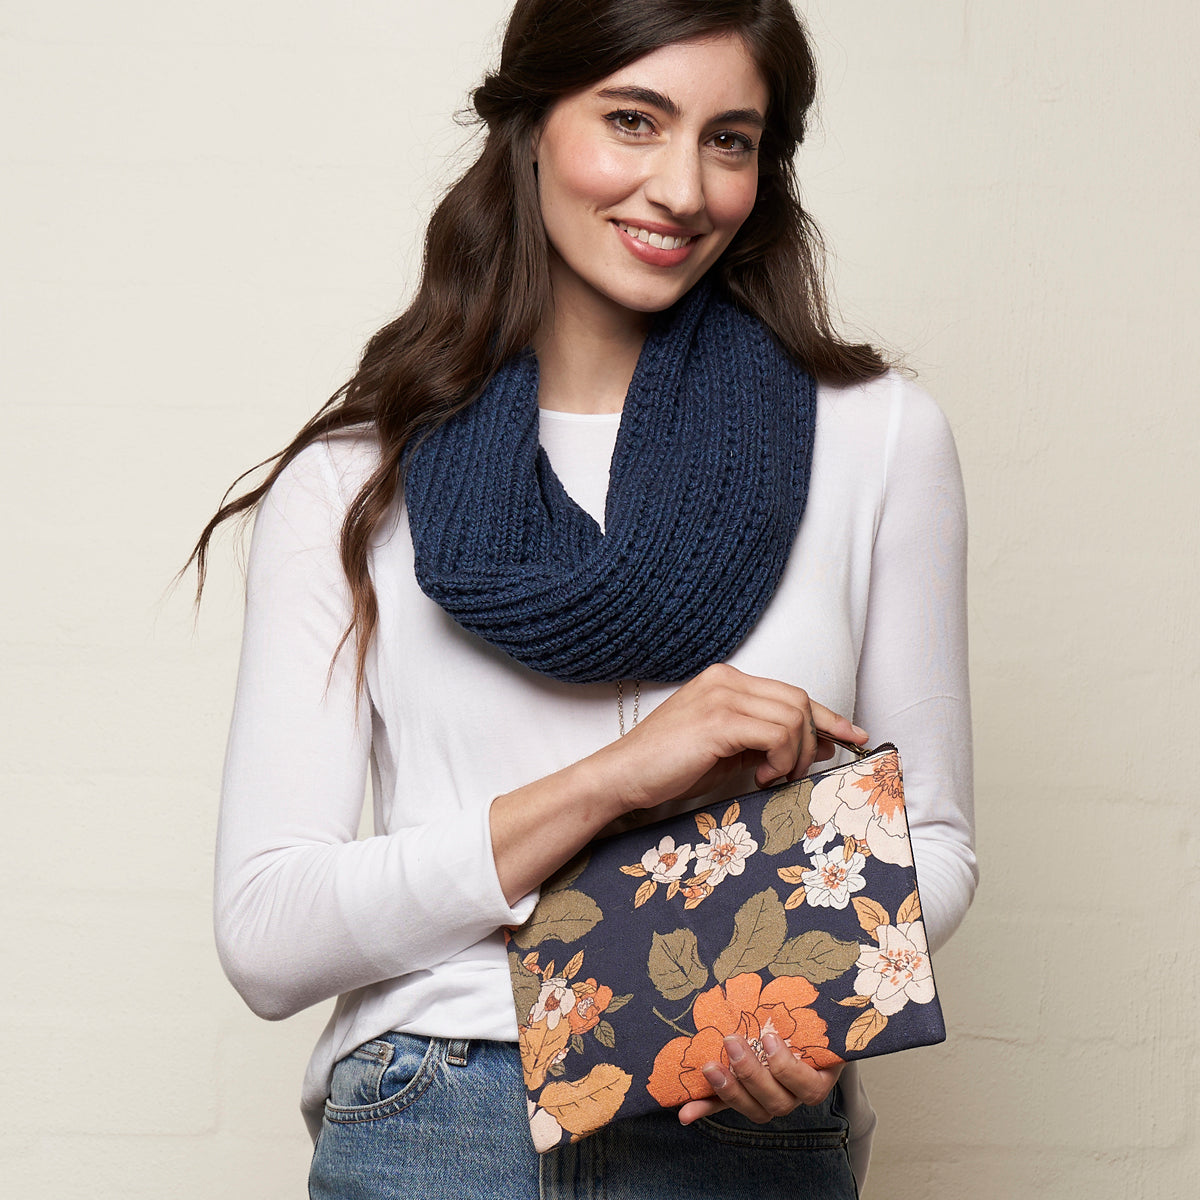 Retro Flowers Zip Clutch